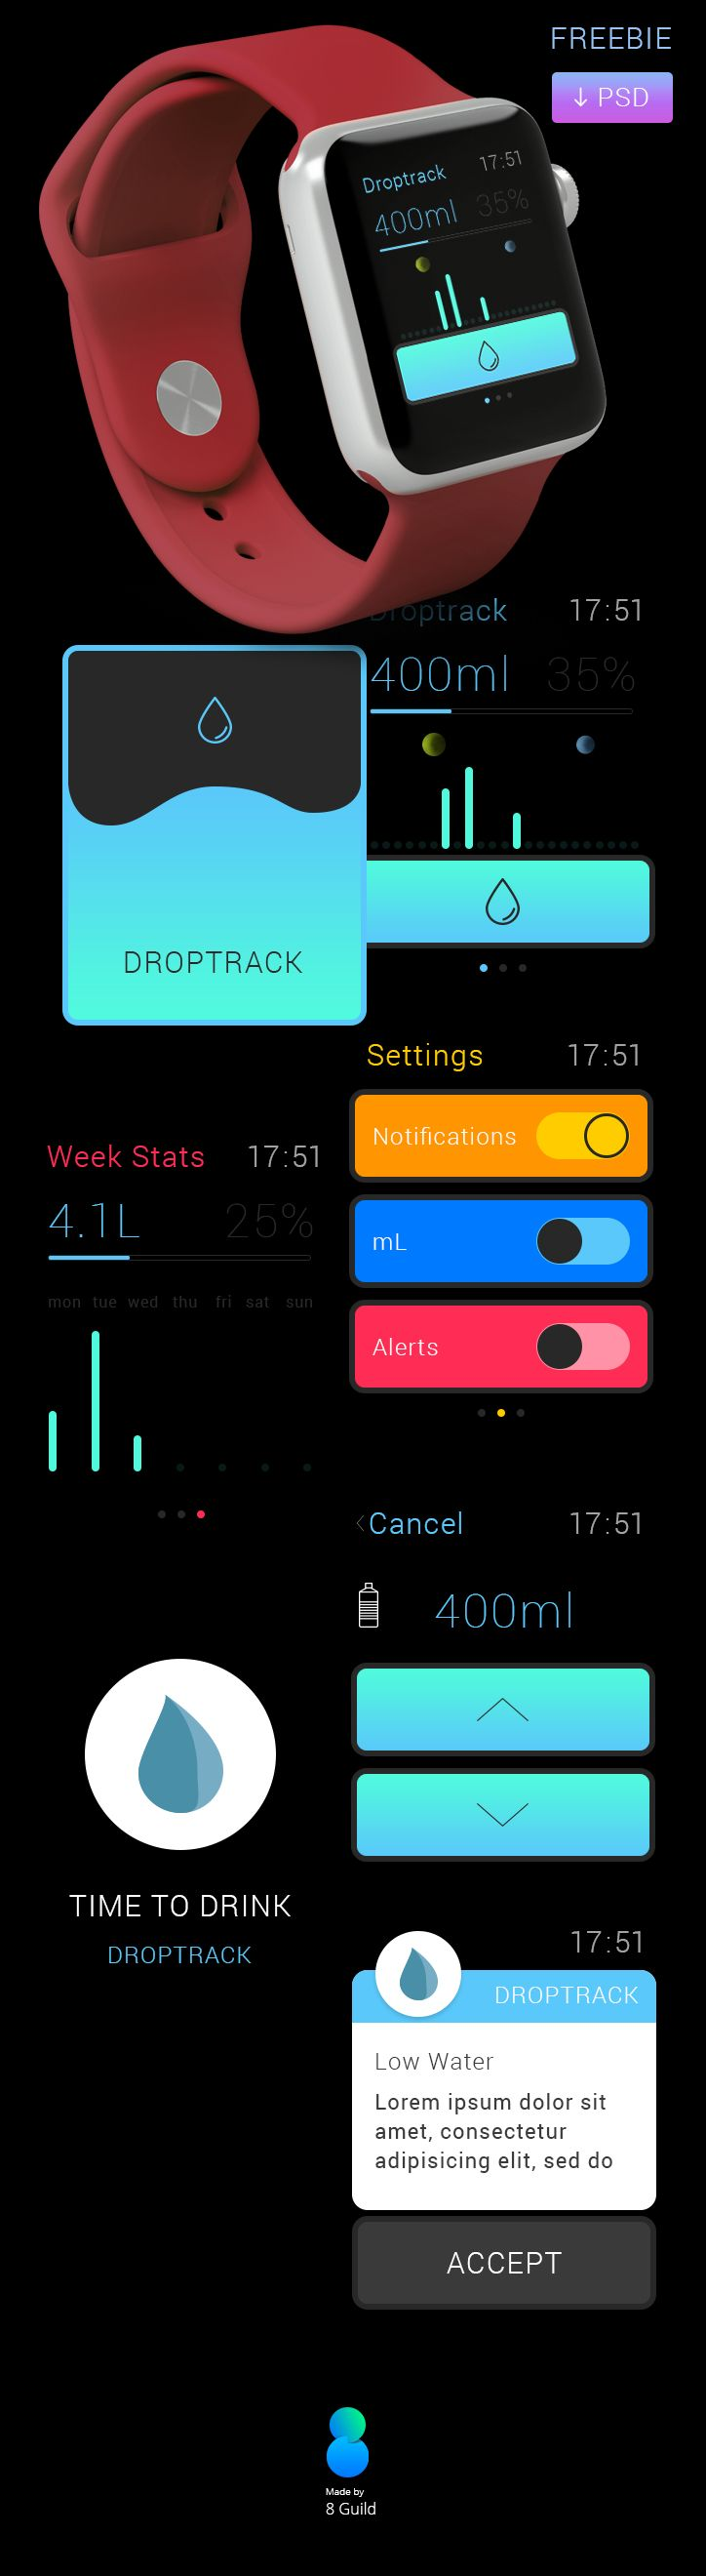 Apple Watch App Freebie on Behance